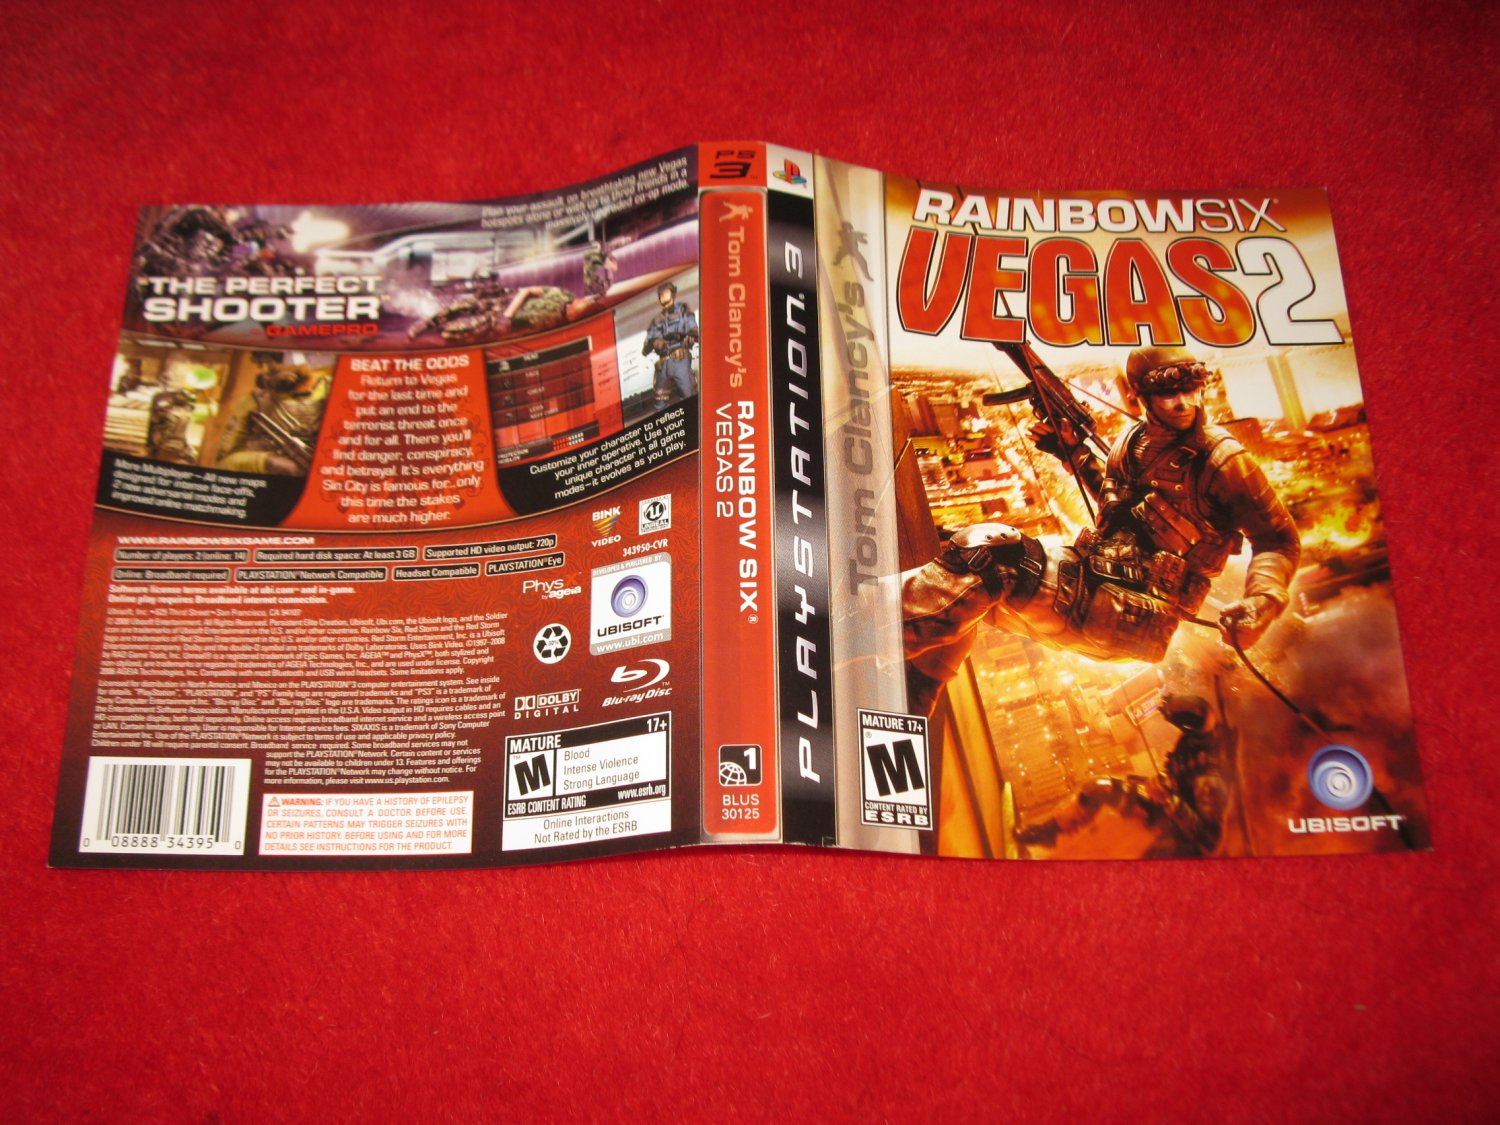 Rainbow Six Vegas 2 : Playstation 3 PS3 Video Game Case Cover Art insert